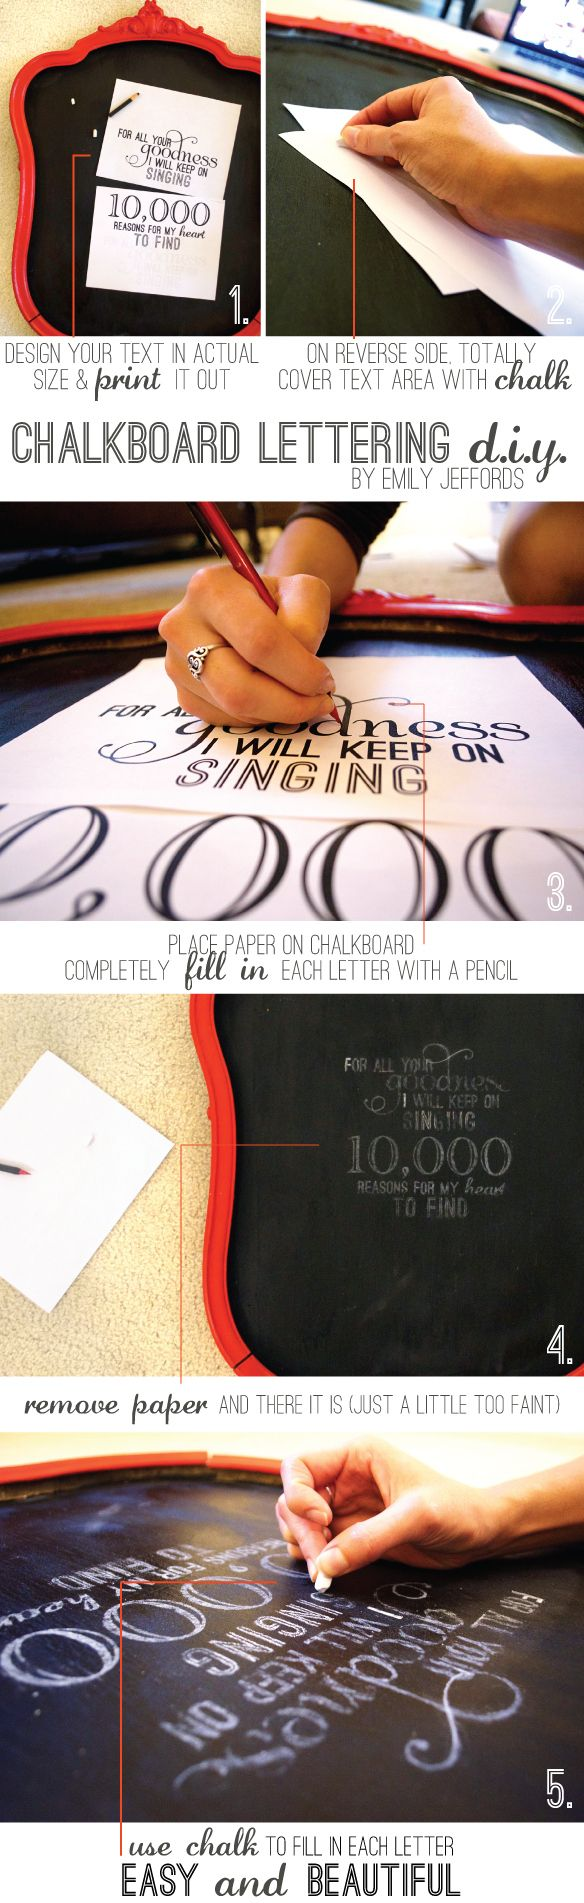 Cool way to get the lettering on your chalkboard to be perfecto!